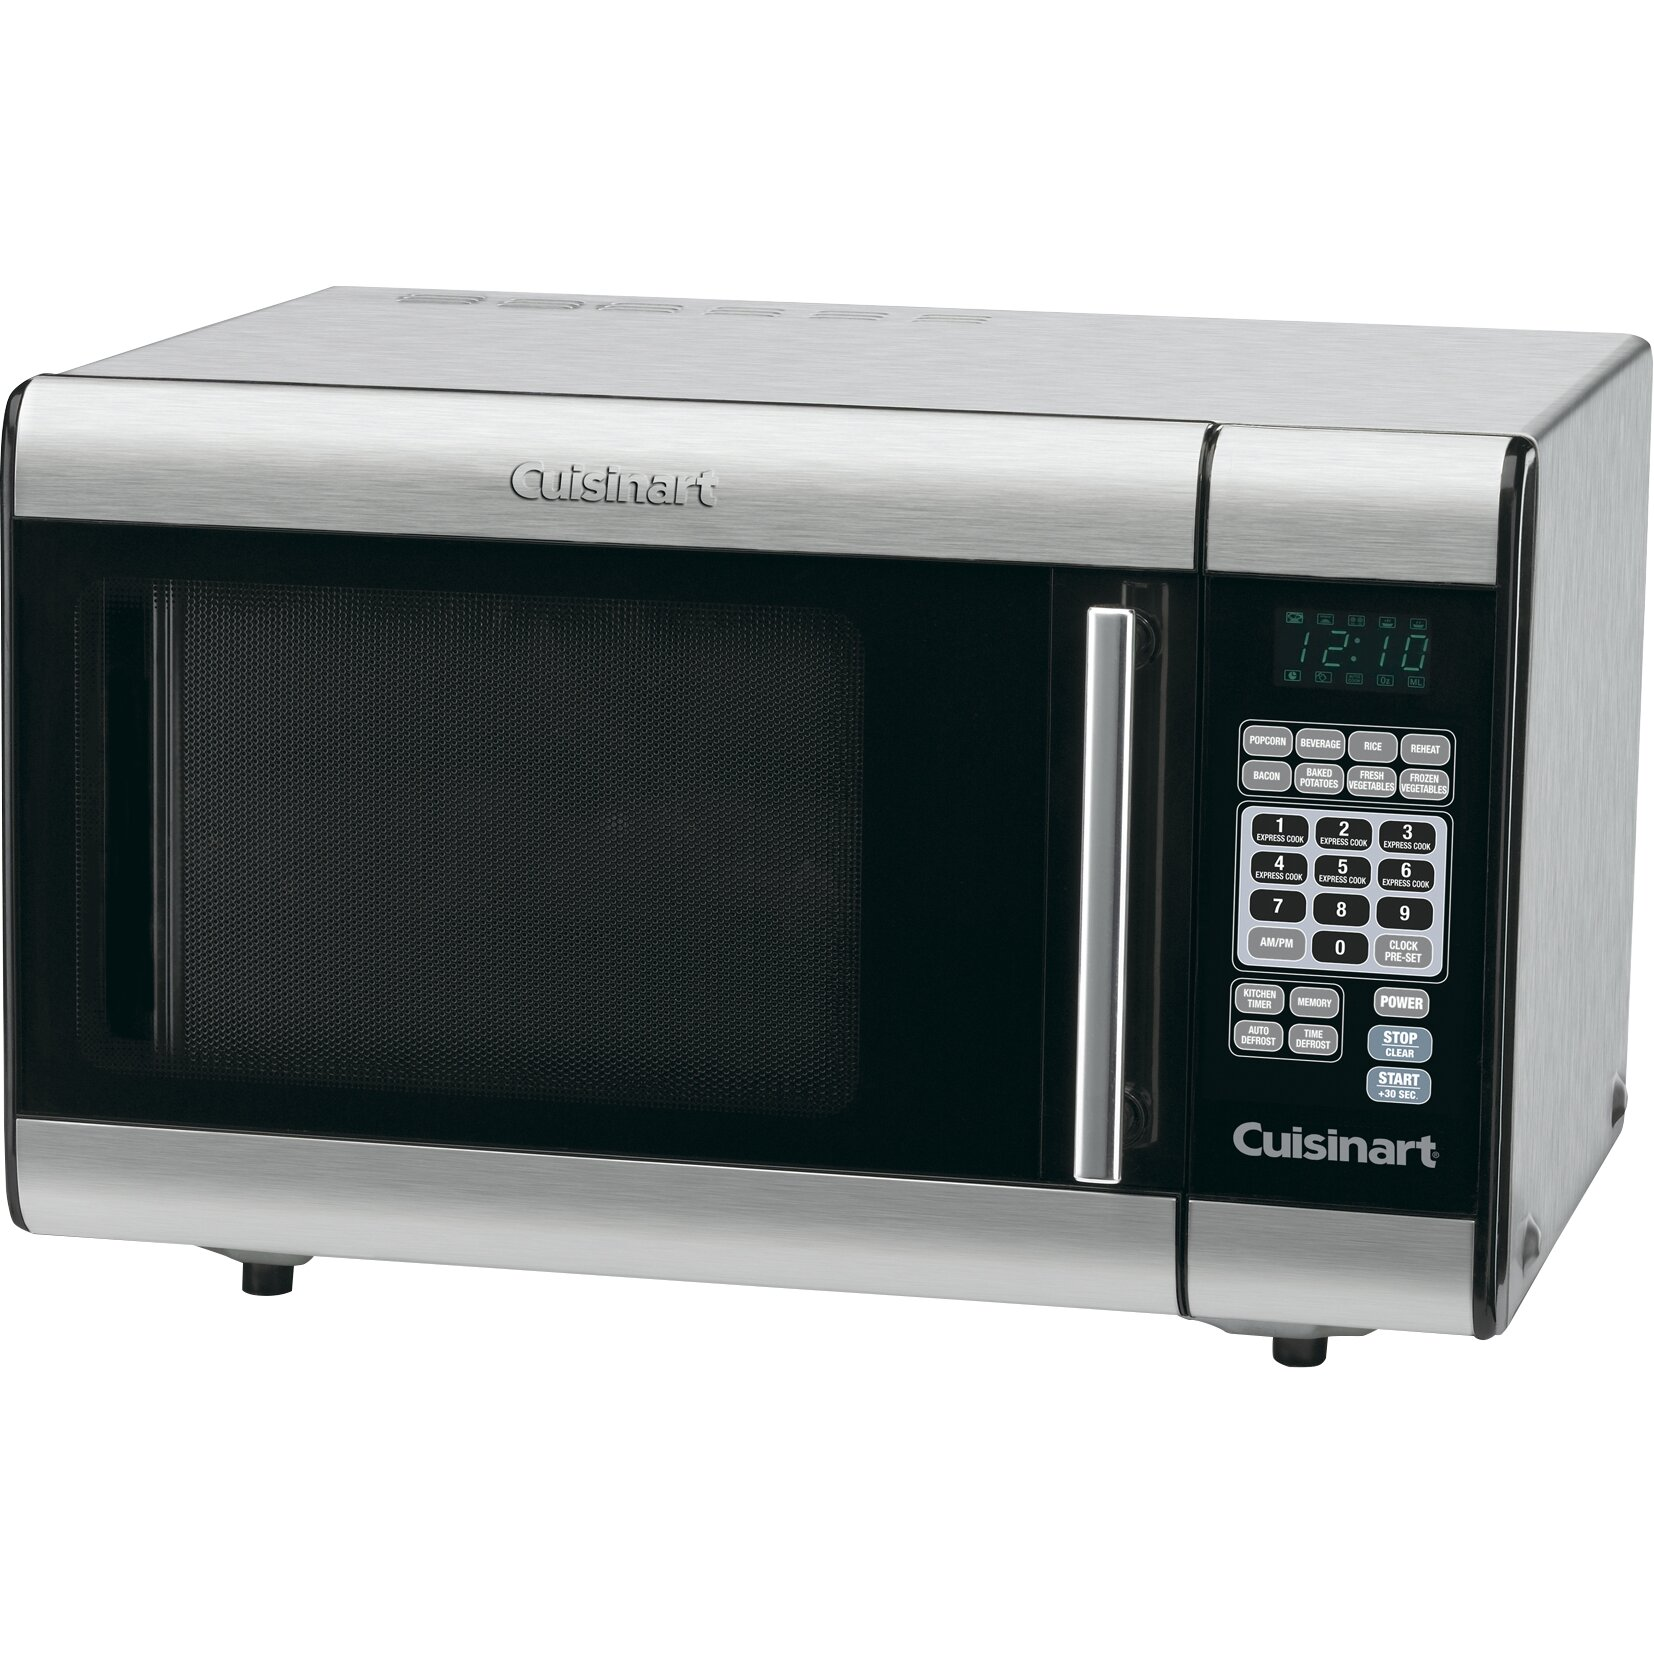 Cuisinart 1.0 cu. ft. 900W Countertop Microwave & Reviews Wayfair.ca